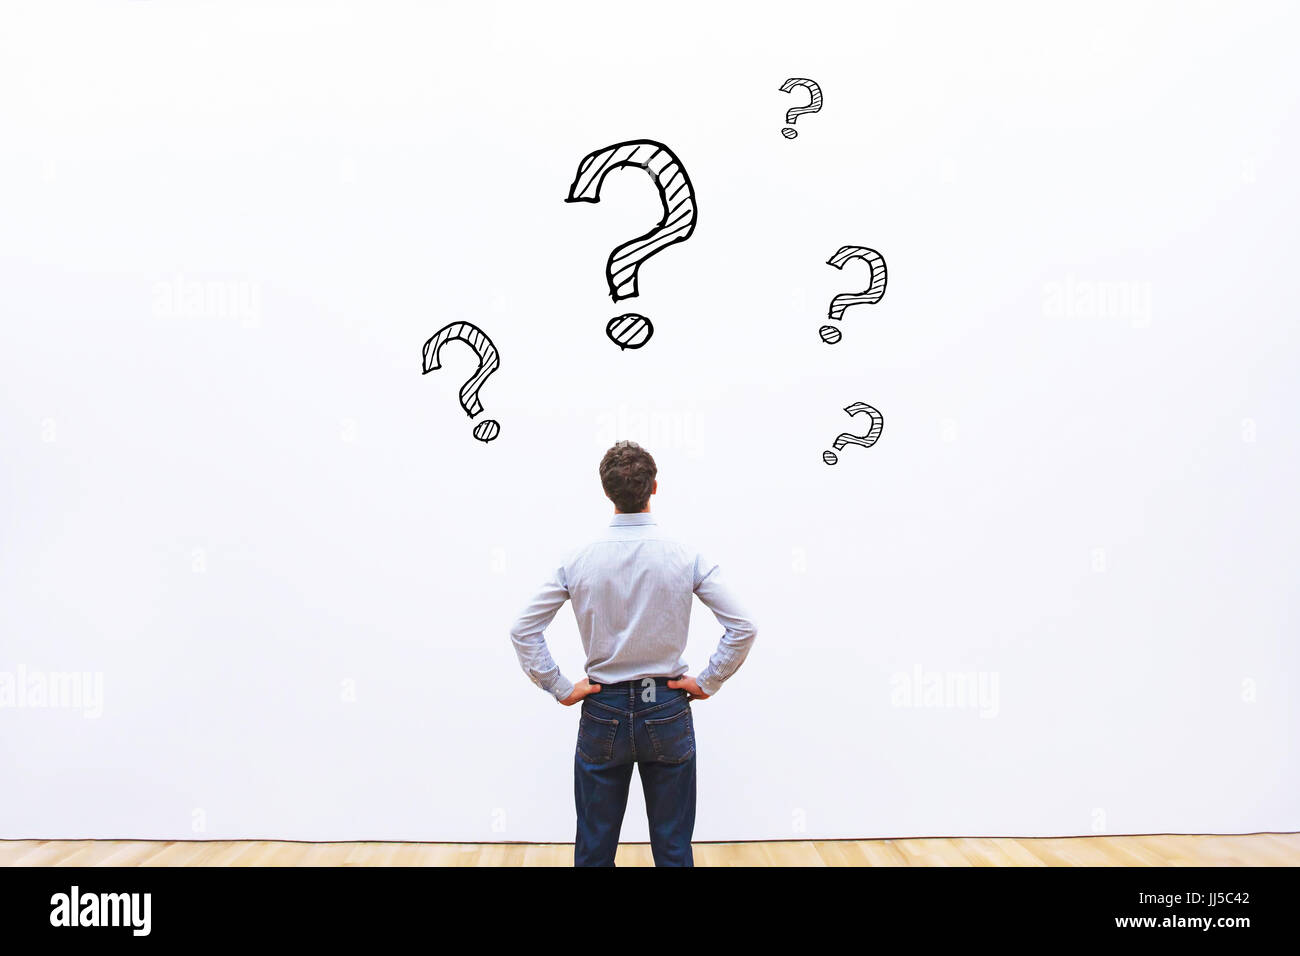 question concept, business man thinking - Stock Image